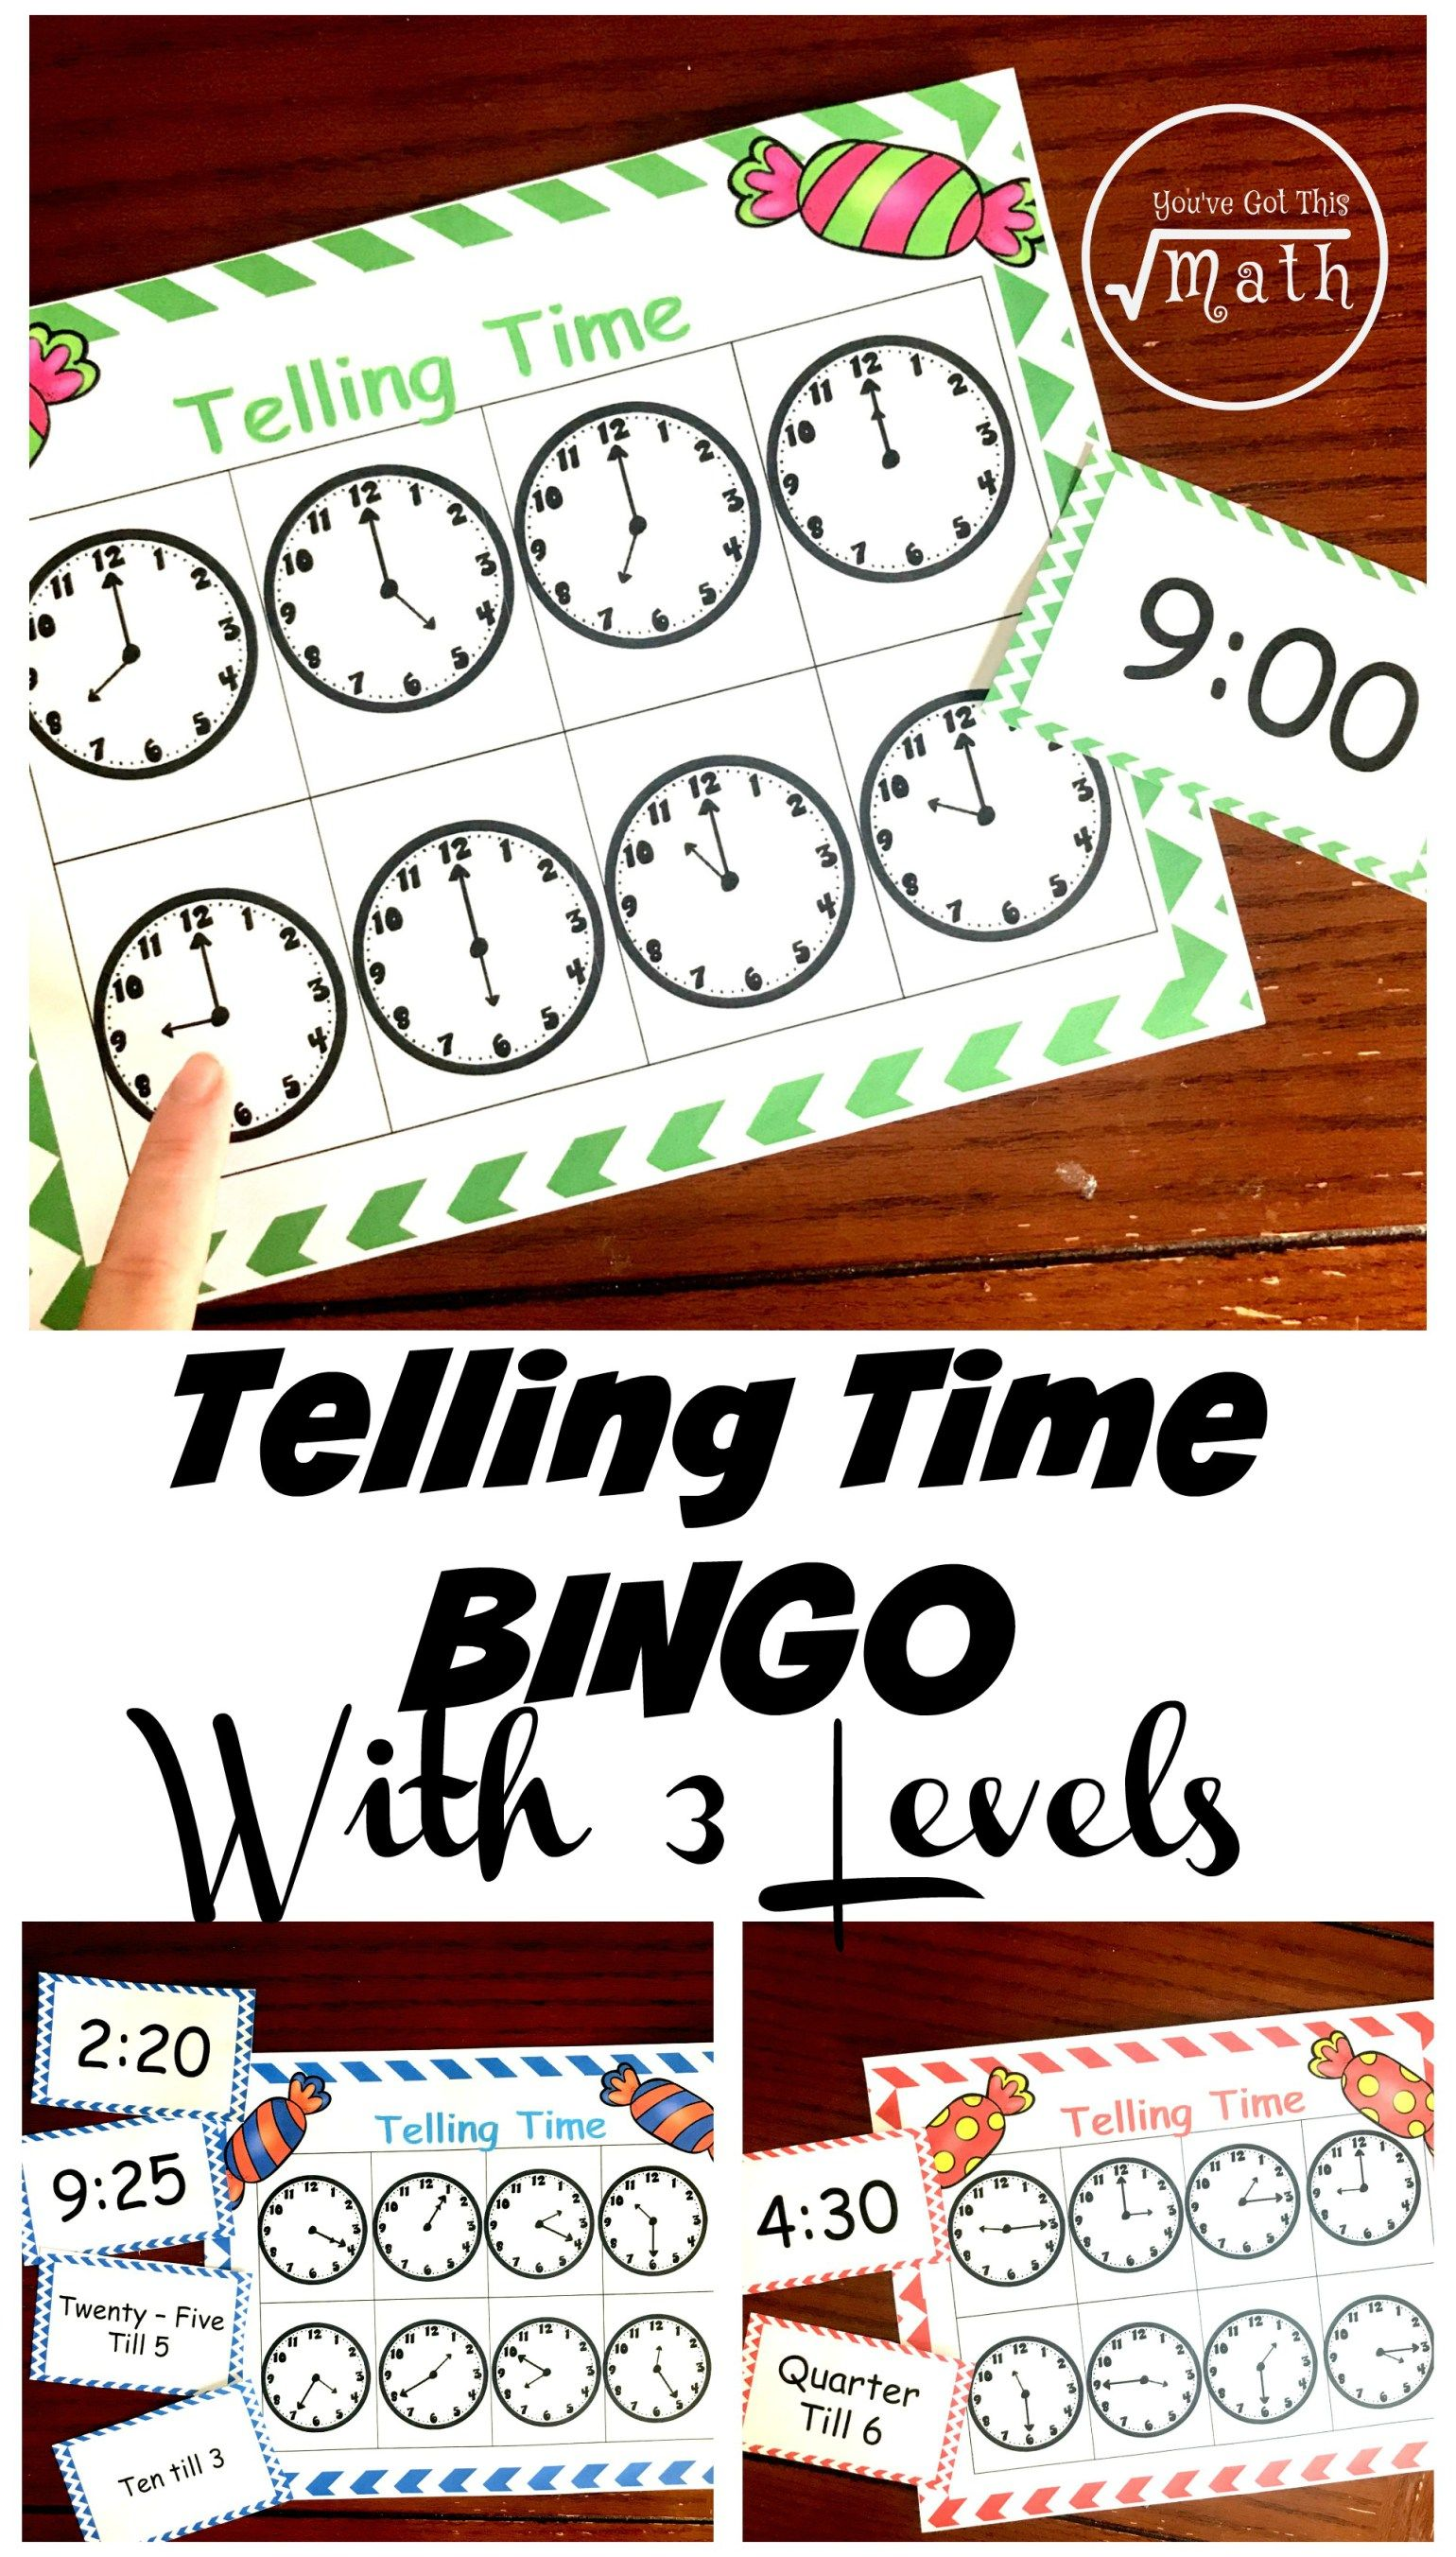 Free Bingo Game To Practice Telling Time For Kids